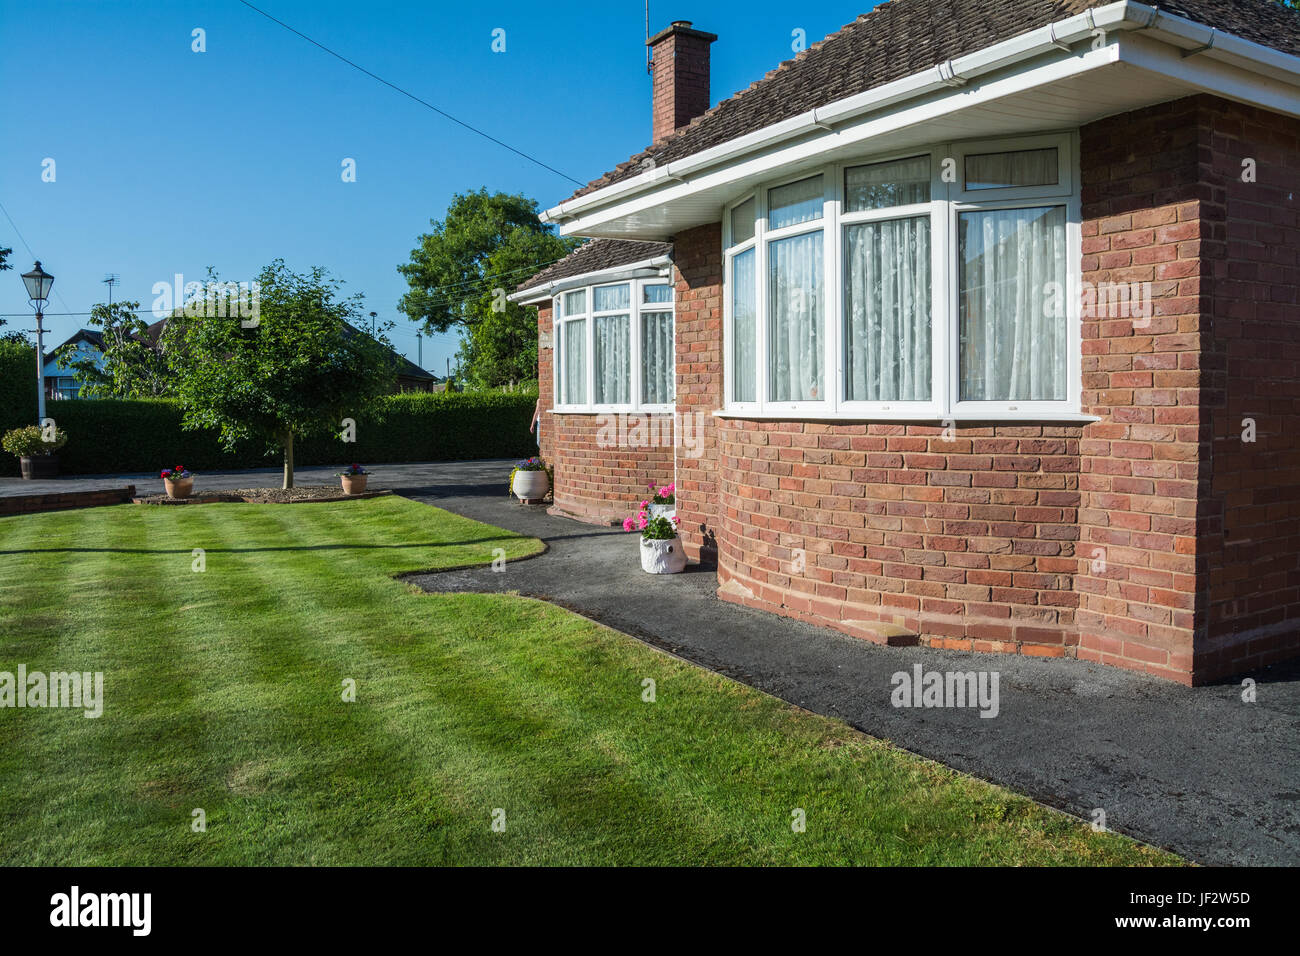 A red brick bungalow with bay windows on a bright sunny day. Shropshire, UK - Stock Image